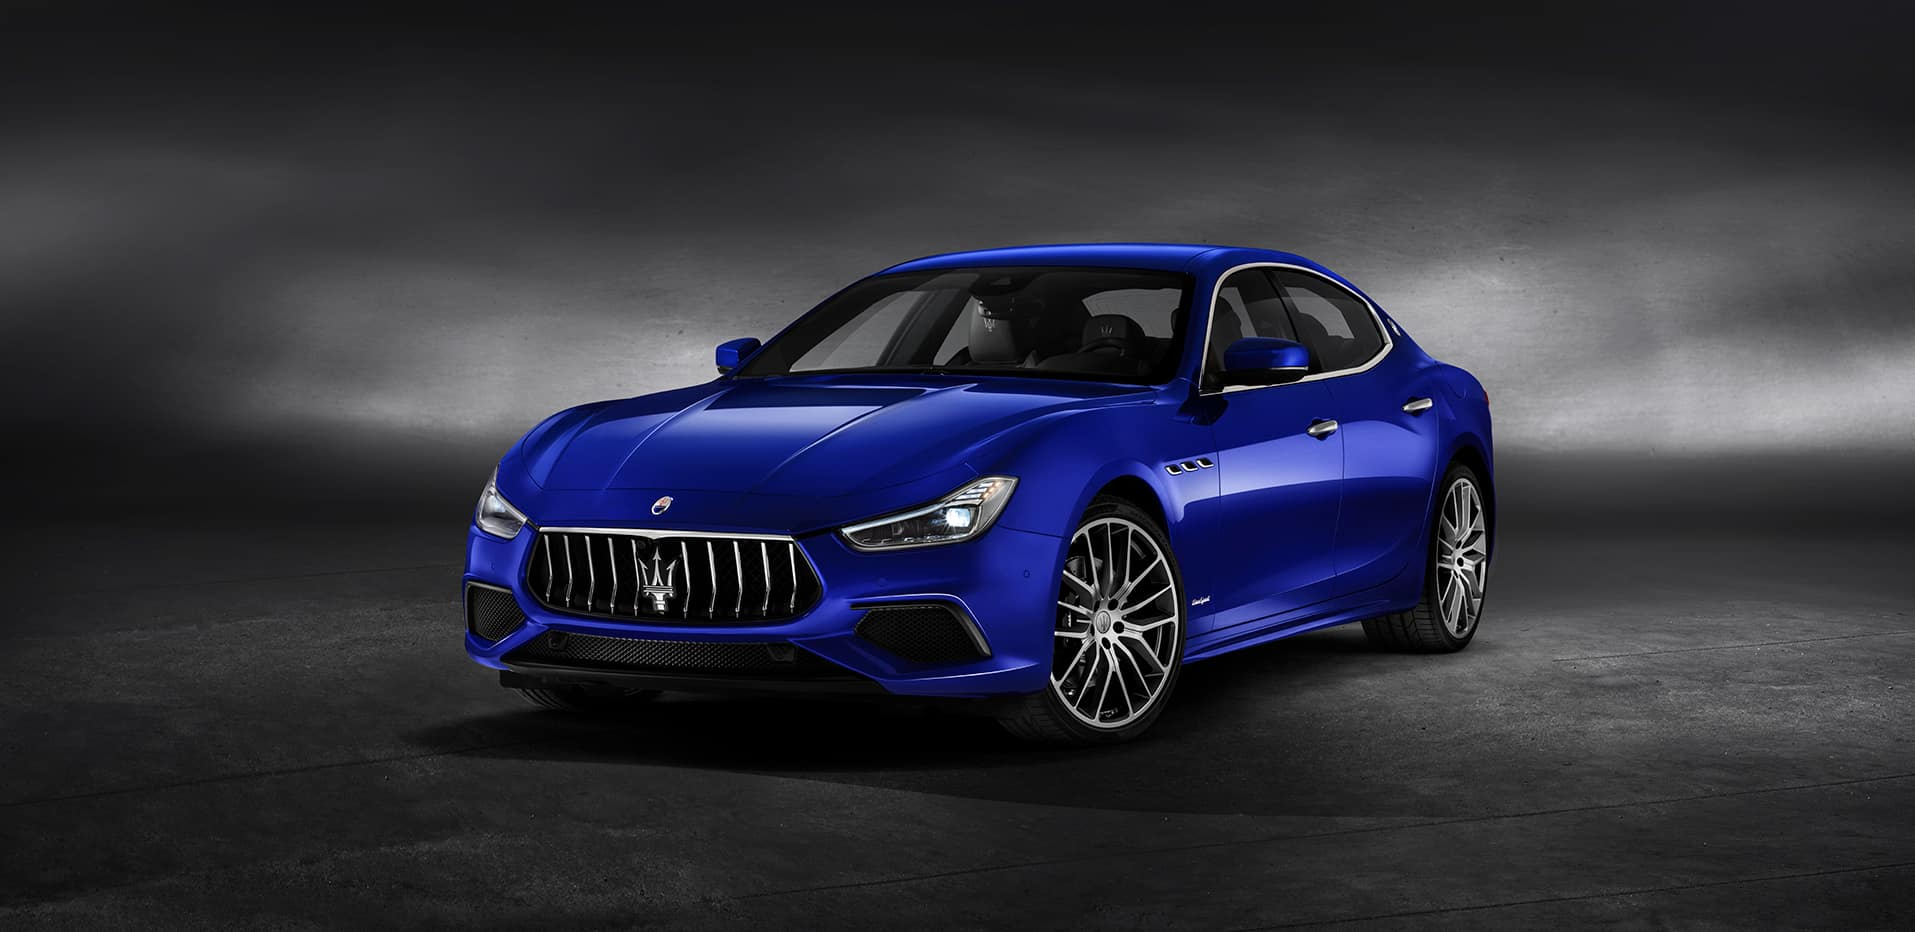 2020 Maserati Ghibli parked in showroom | Bennett Maserati of Allentown is a Car Dealership near Wescosville PA in Allentown